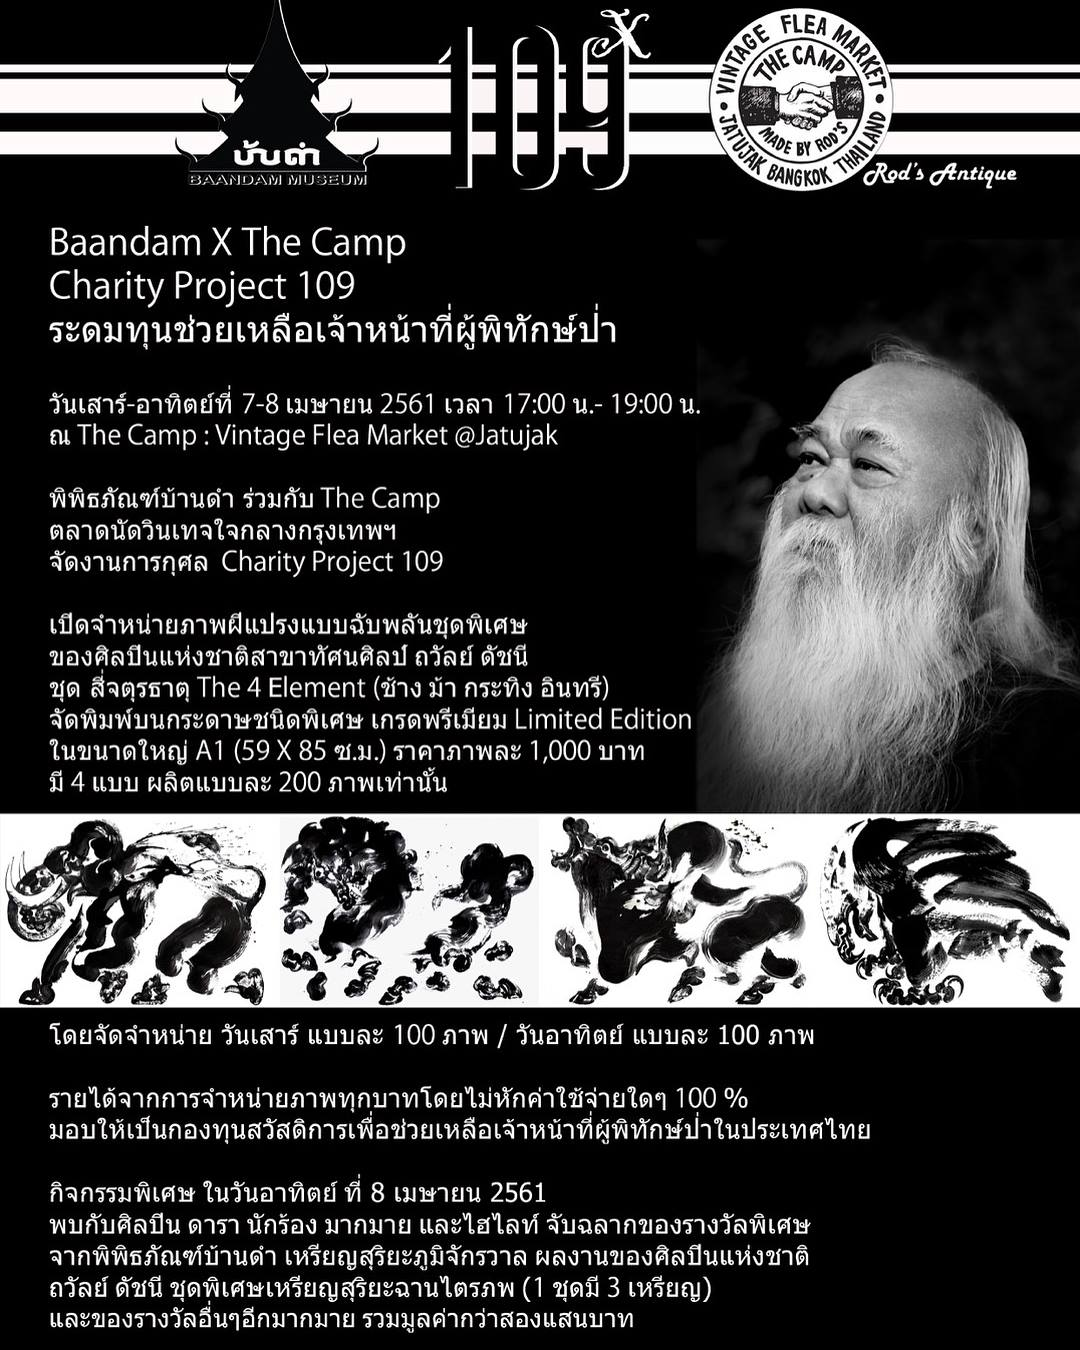 Baandam X The Camp